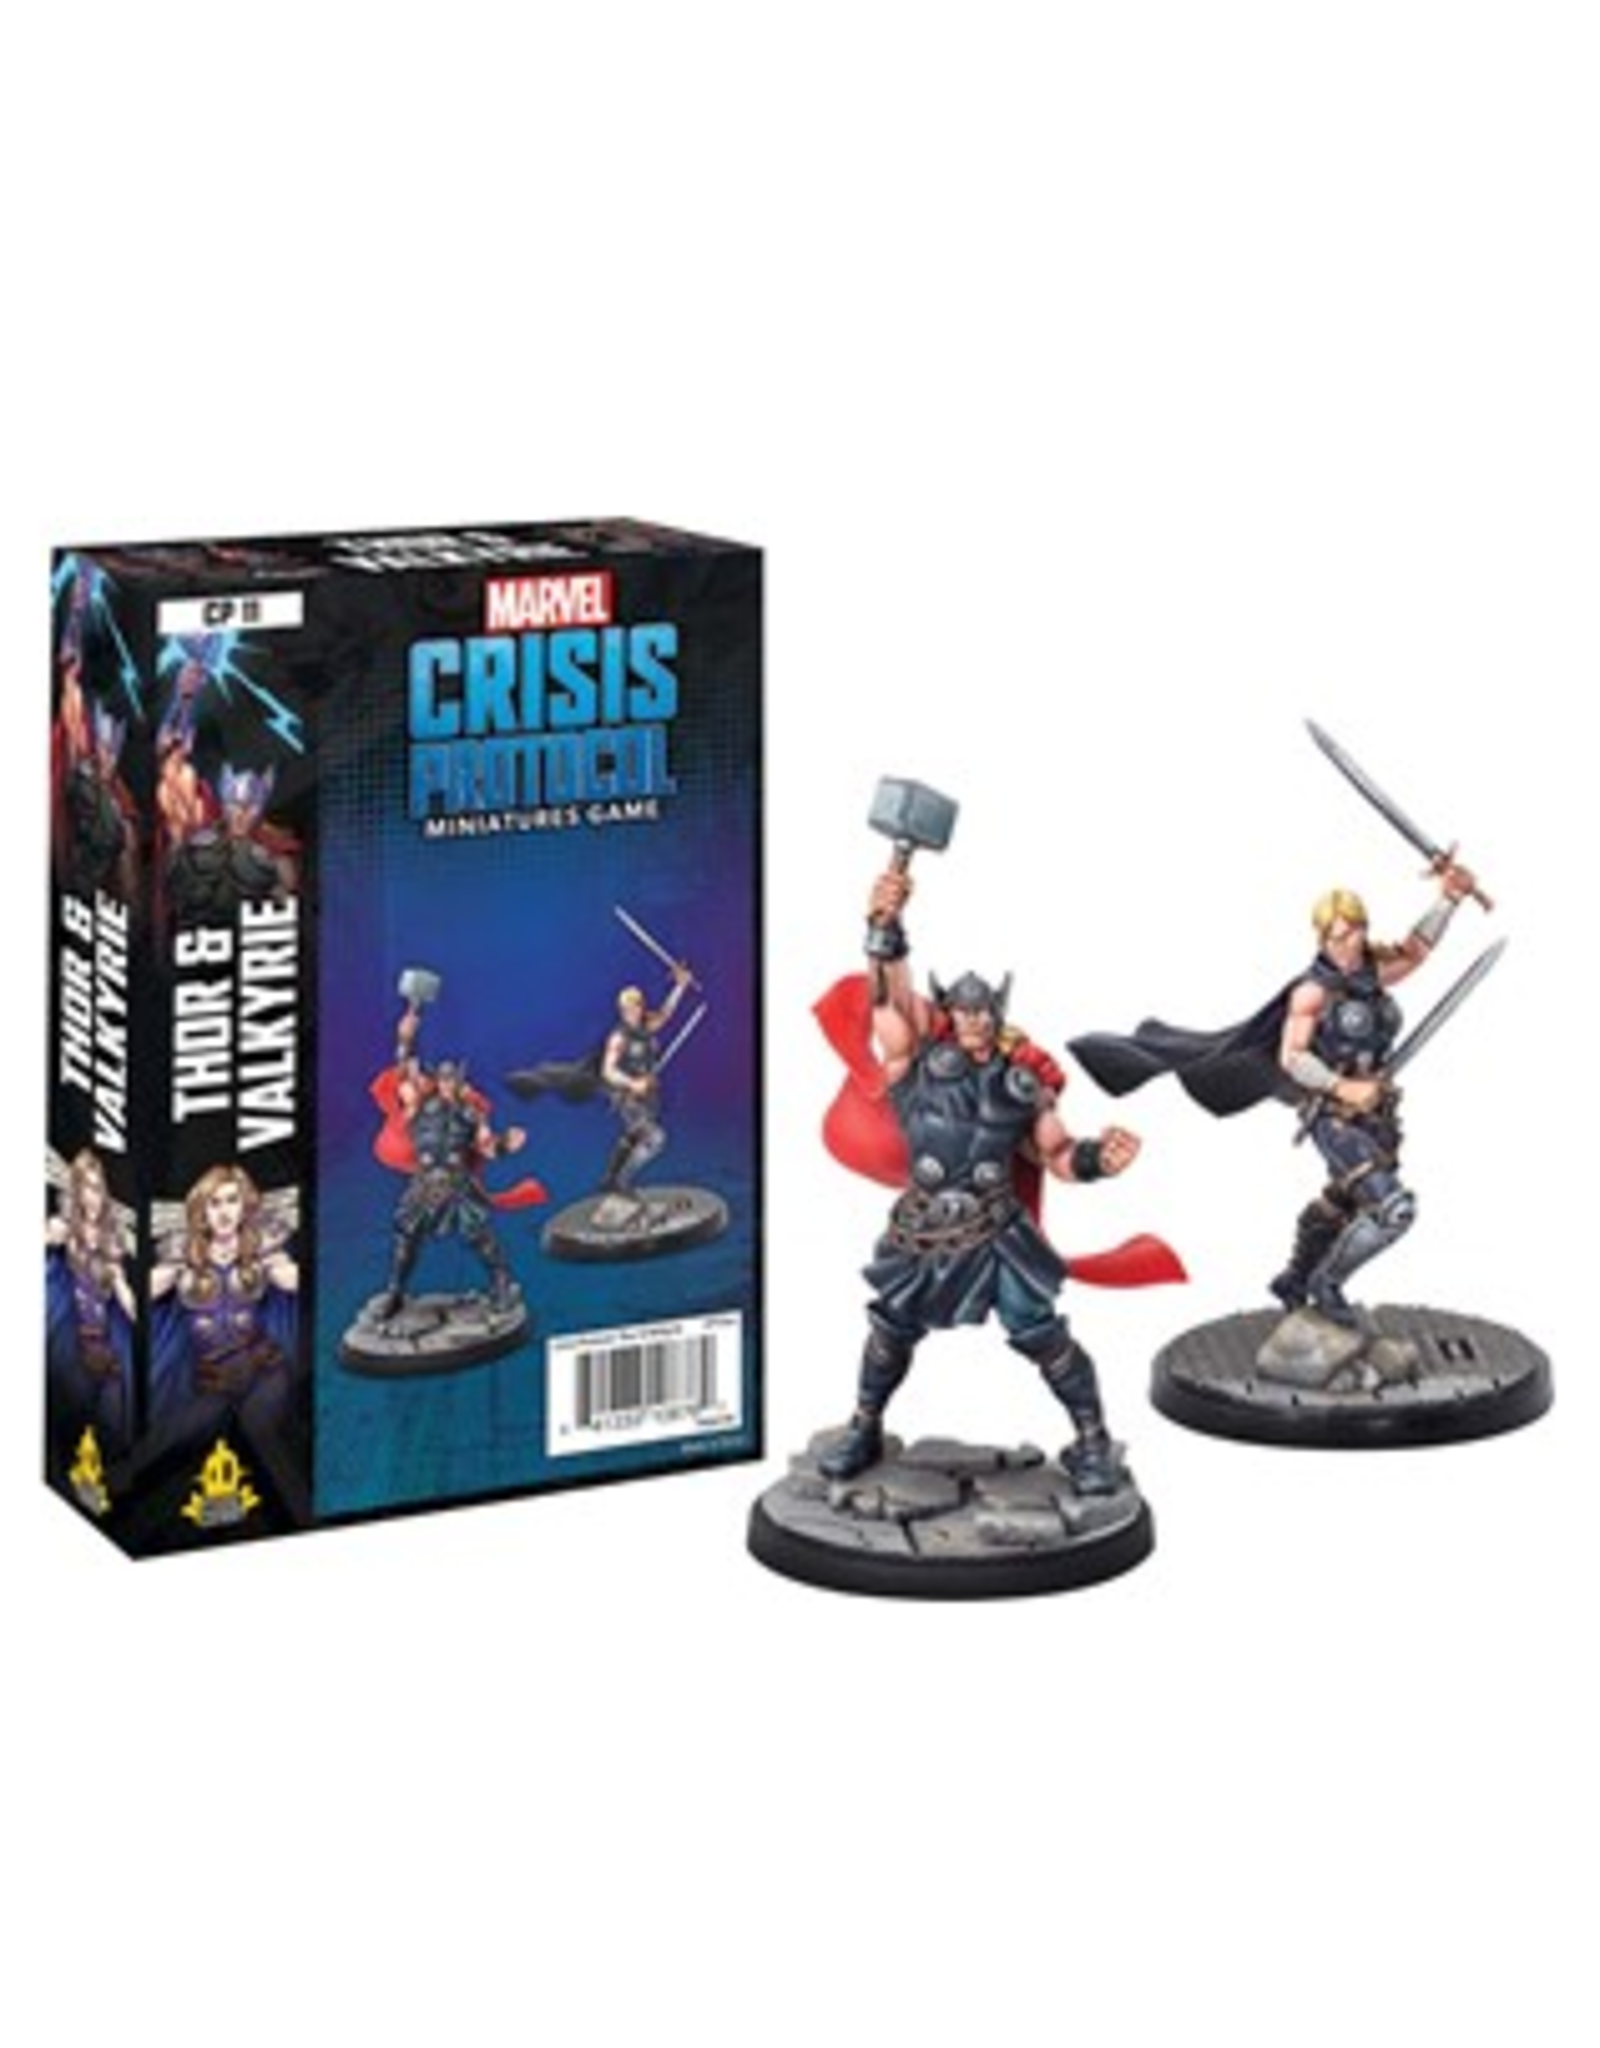 Atomic Mass Games Thor and Valkyrie Character Pack - Marvel Crisis Protocol